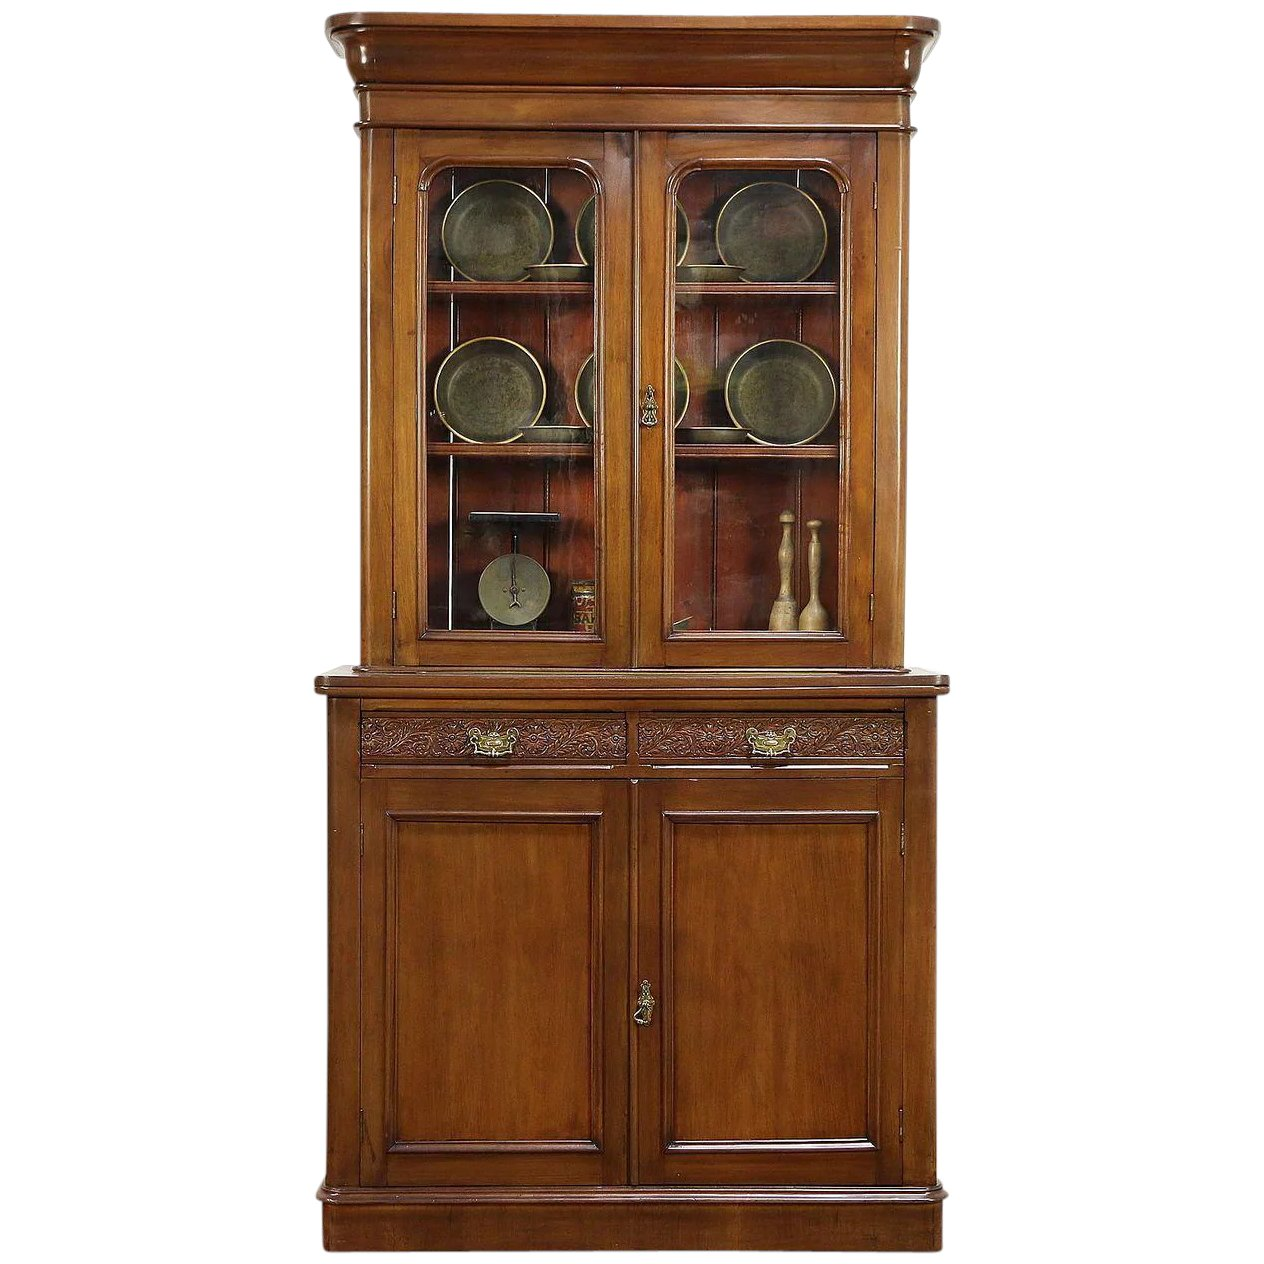 Victorian English Antique Mahogany Bookcase Cabinet Wavy Glass Doors 30488